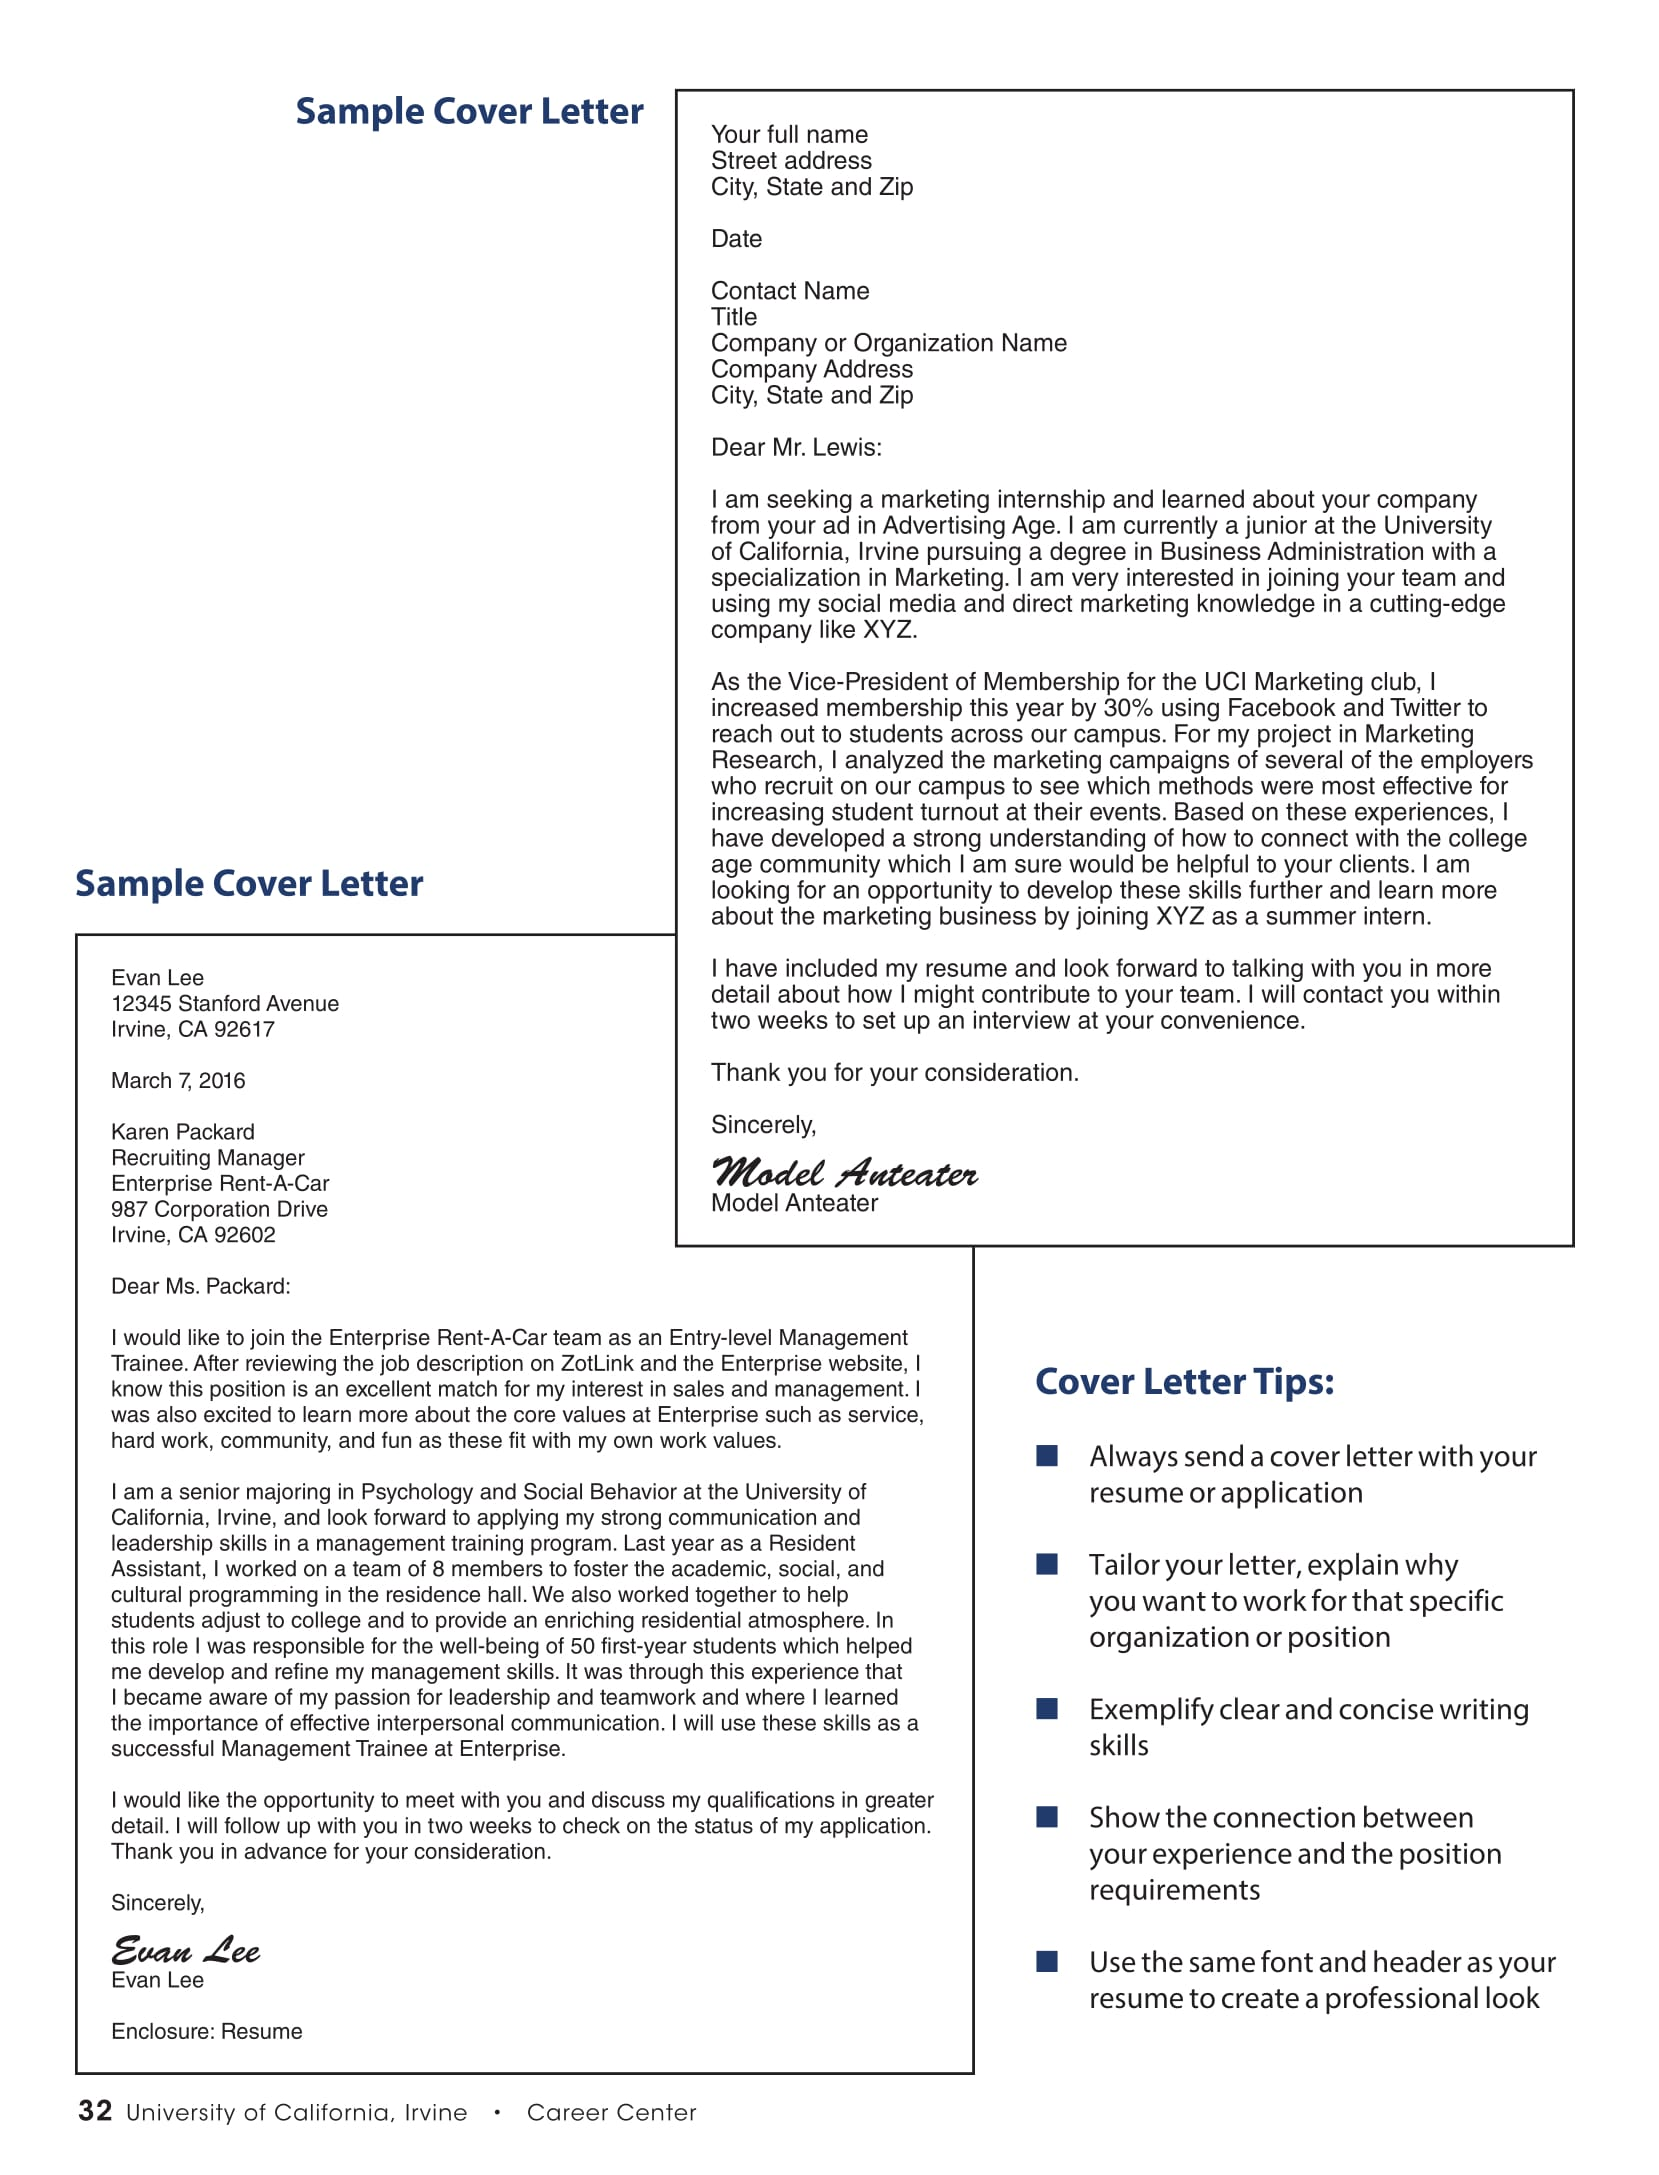 16 Best Cover Letter Samples for Internship - WiseStep